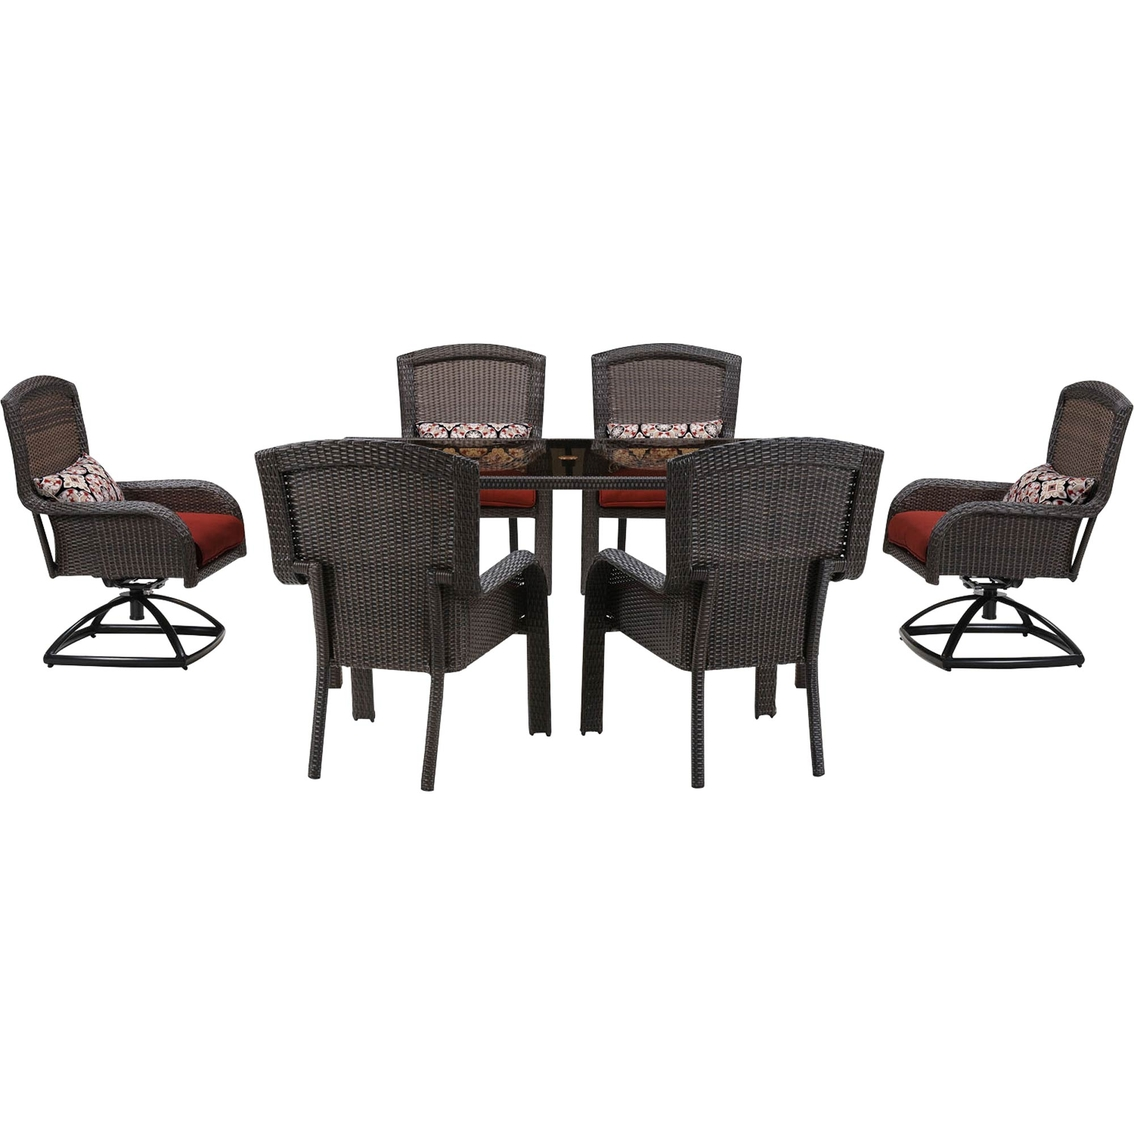 7 Piece Patio Dining Set With Swivel Chairs Hanover Strathmere 7 Piece Dining Set With 4 Stationary